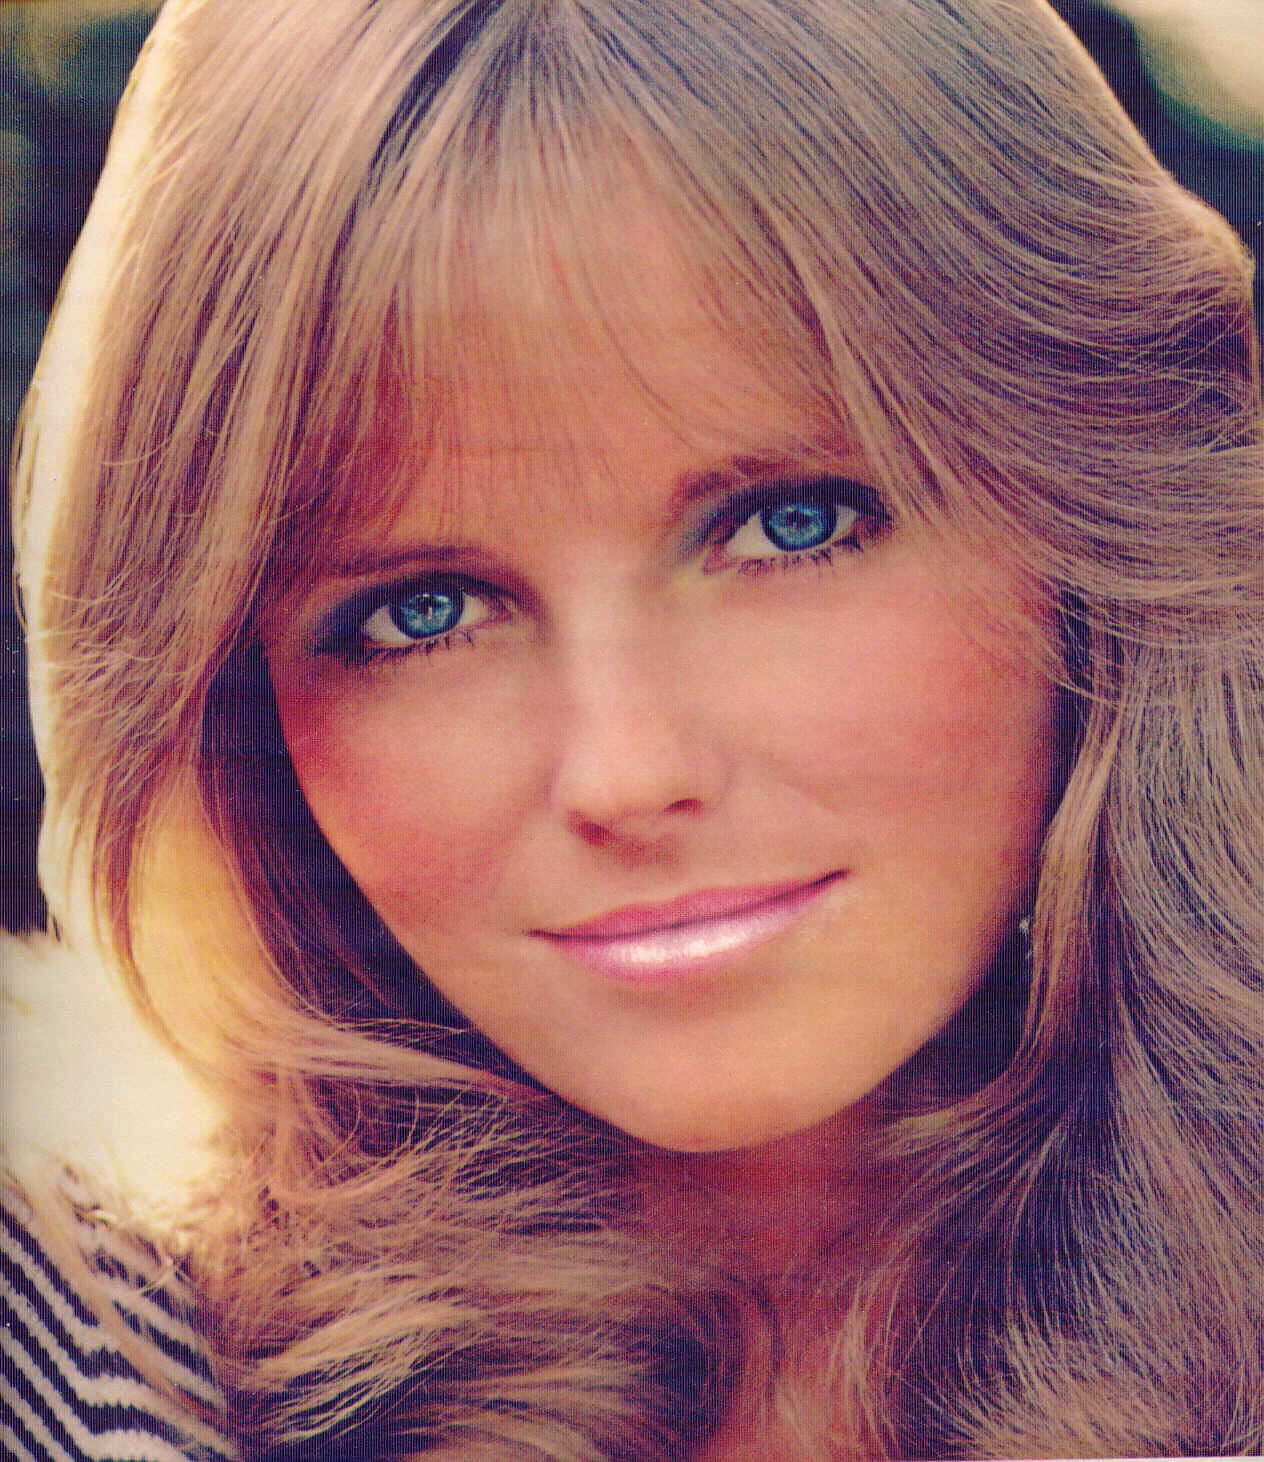 Pictures of Beautiful Women: February 2015 Cheryl Tiegs